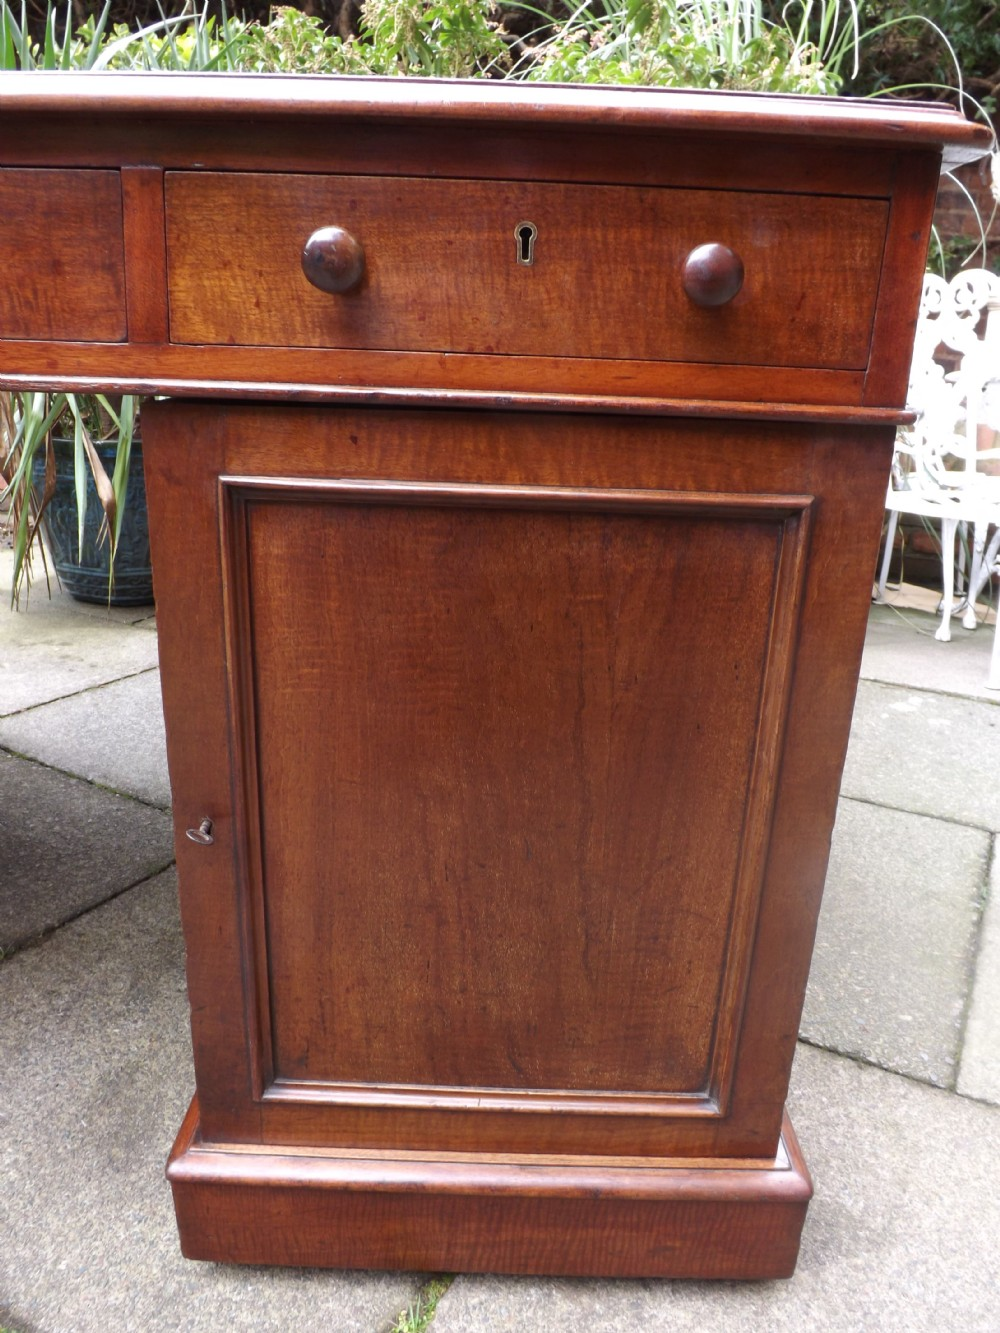 Early C19th Regency Period Mahogany Double Sided Pedestal